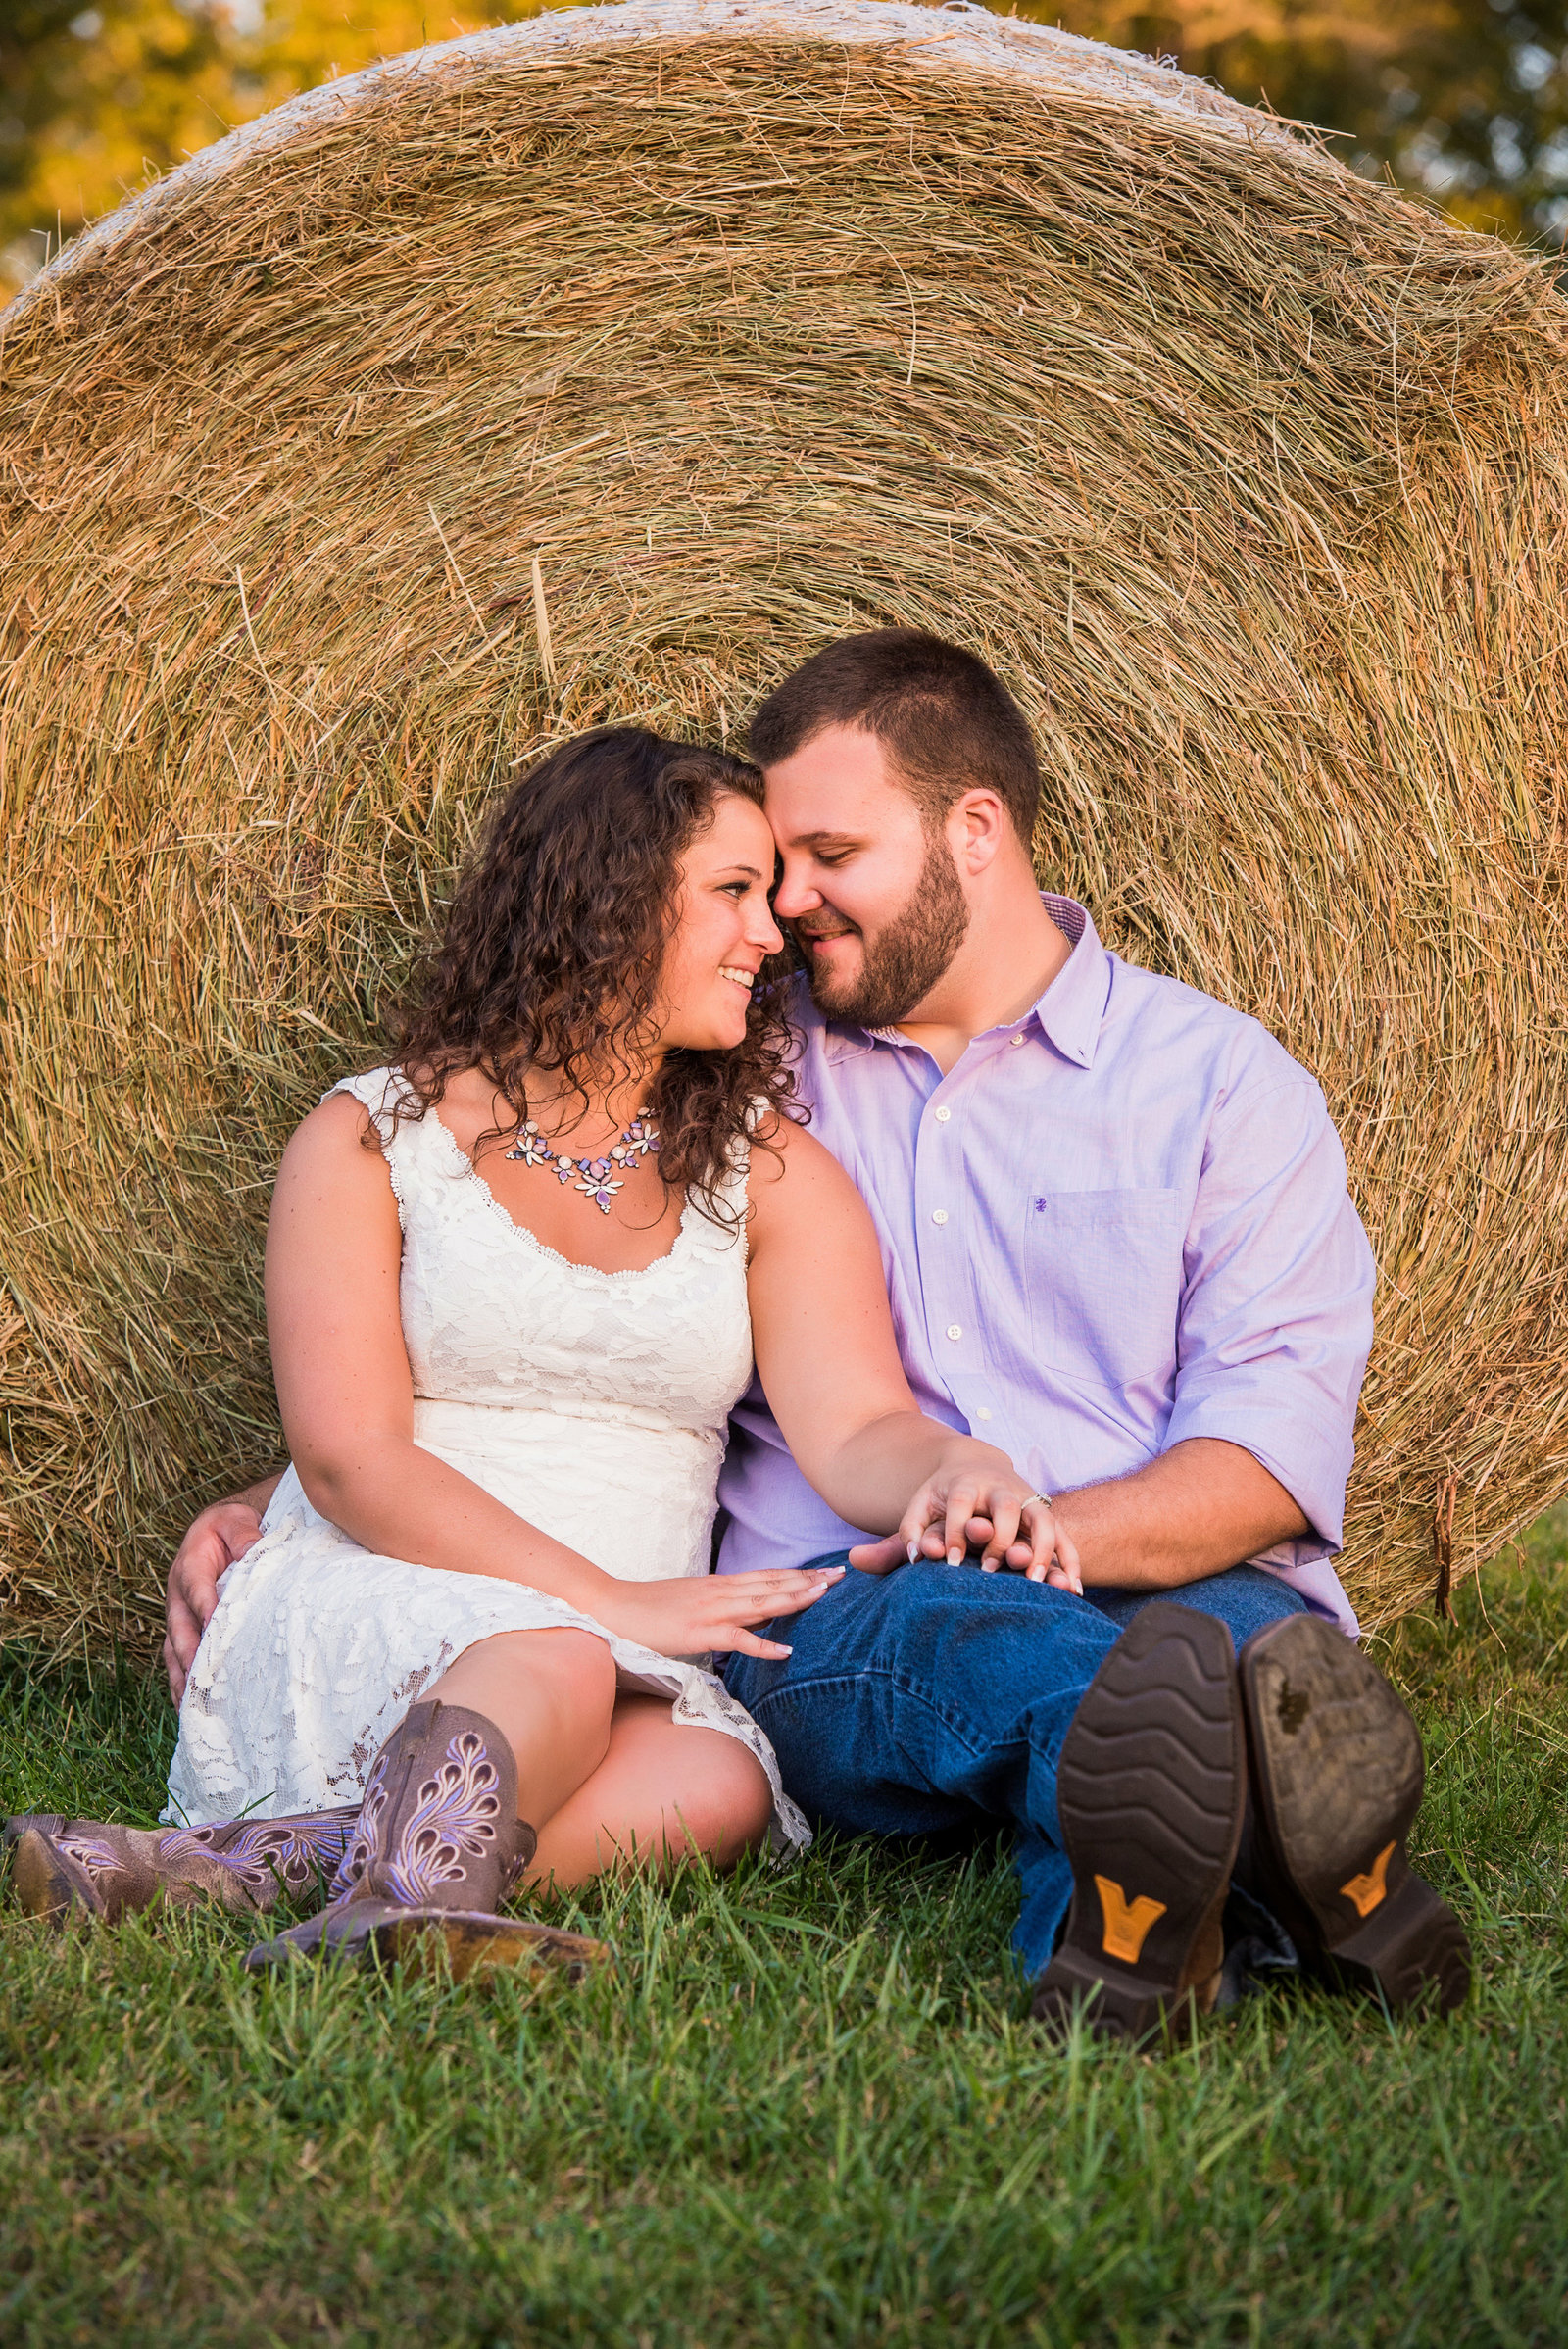 NJ_Rustic_Engagement_Photography161